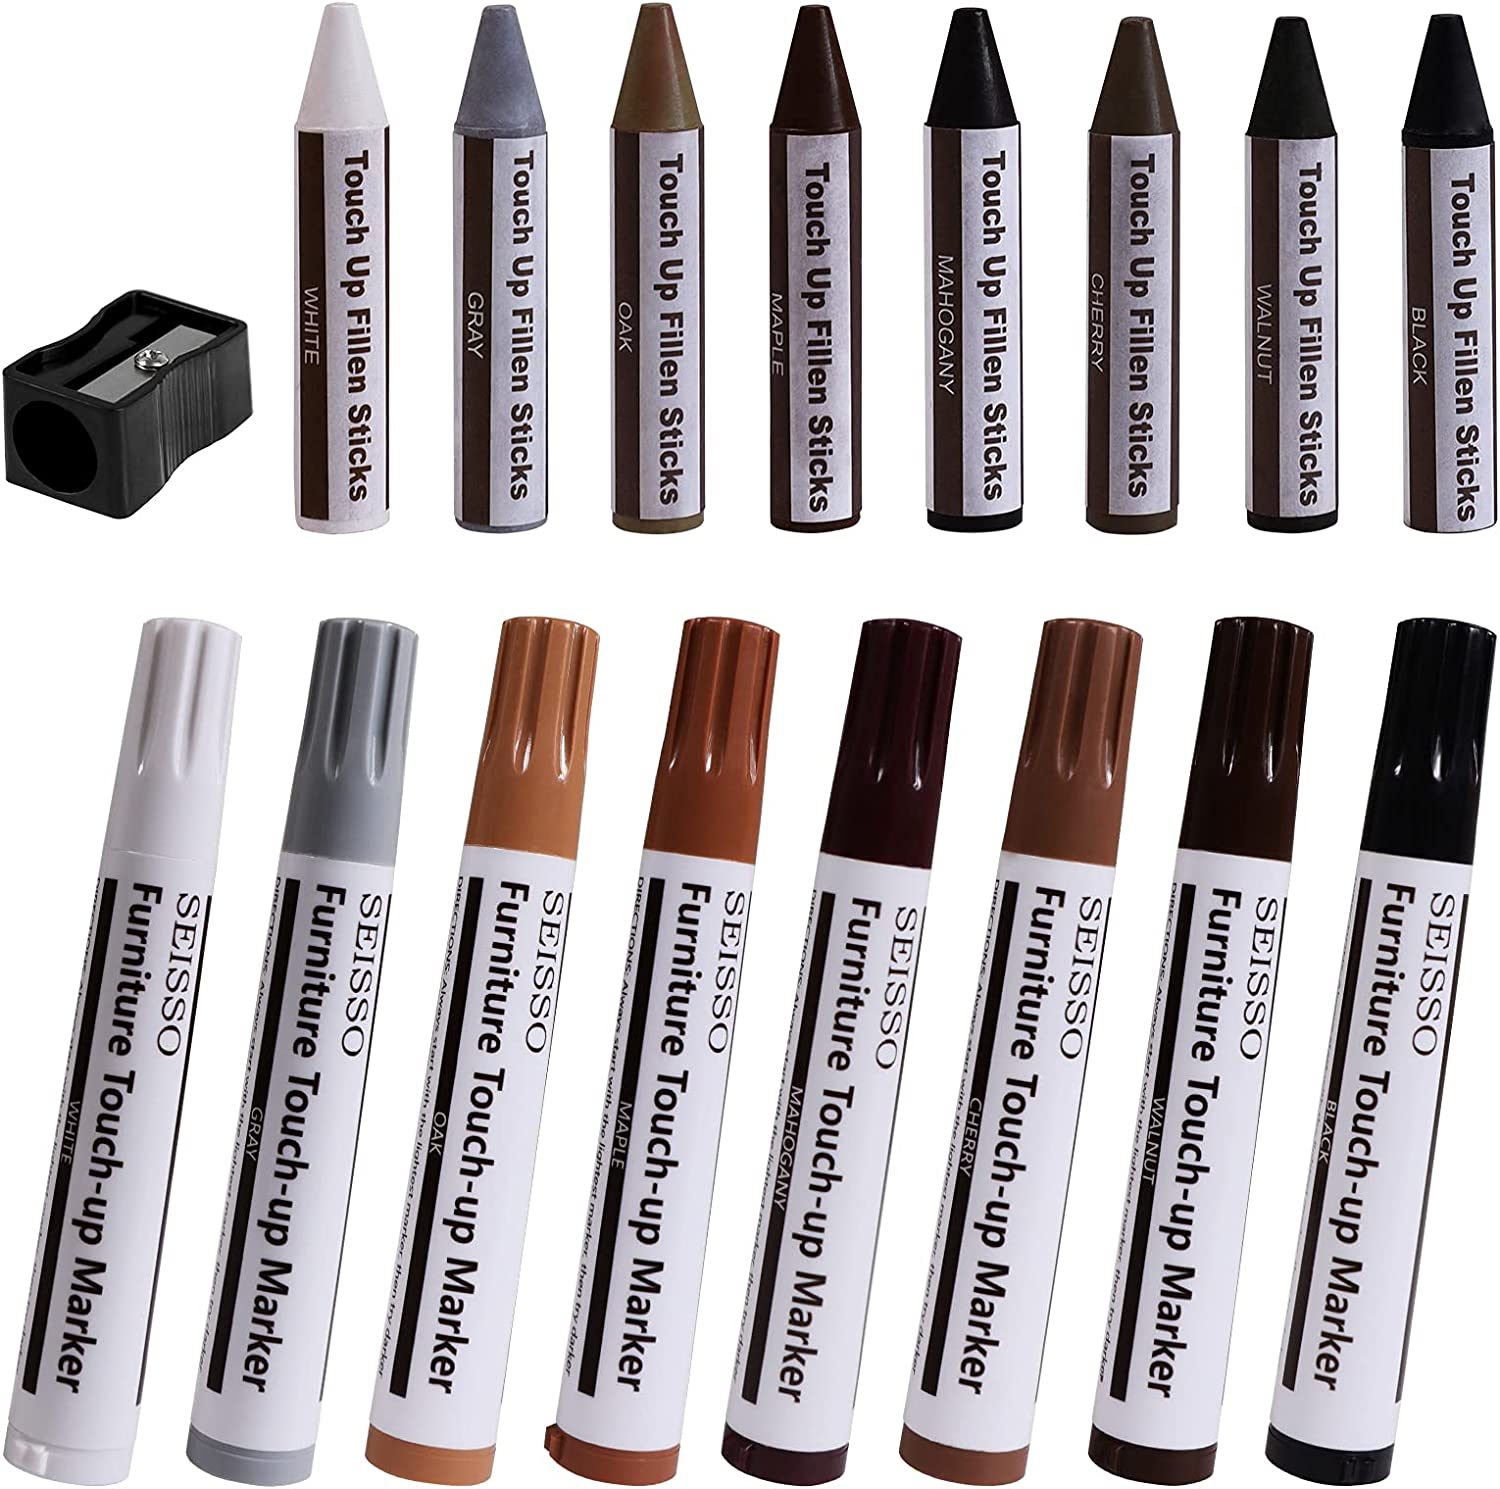 Furniture Cash special price Repair Wood Markers Kit Scratch Super beauty product restock quality top Ups an Cover -